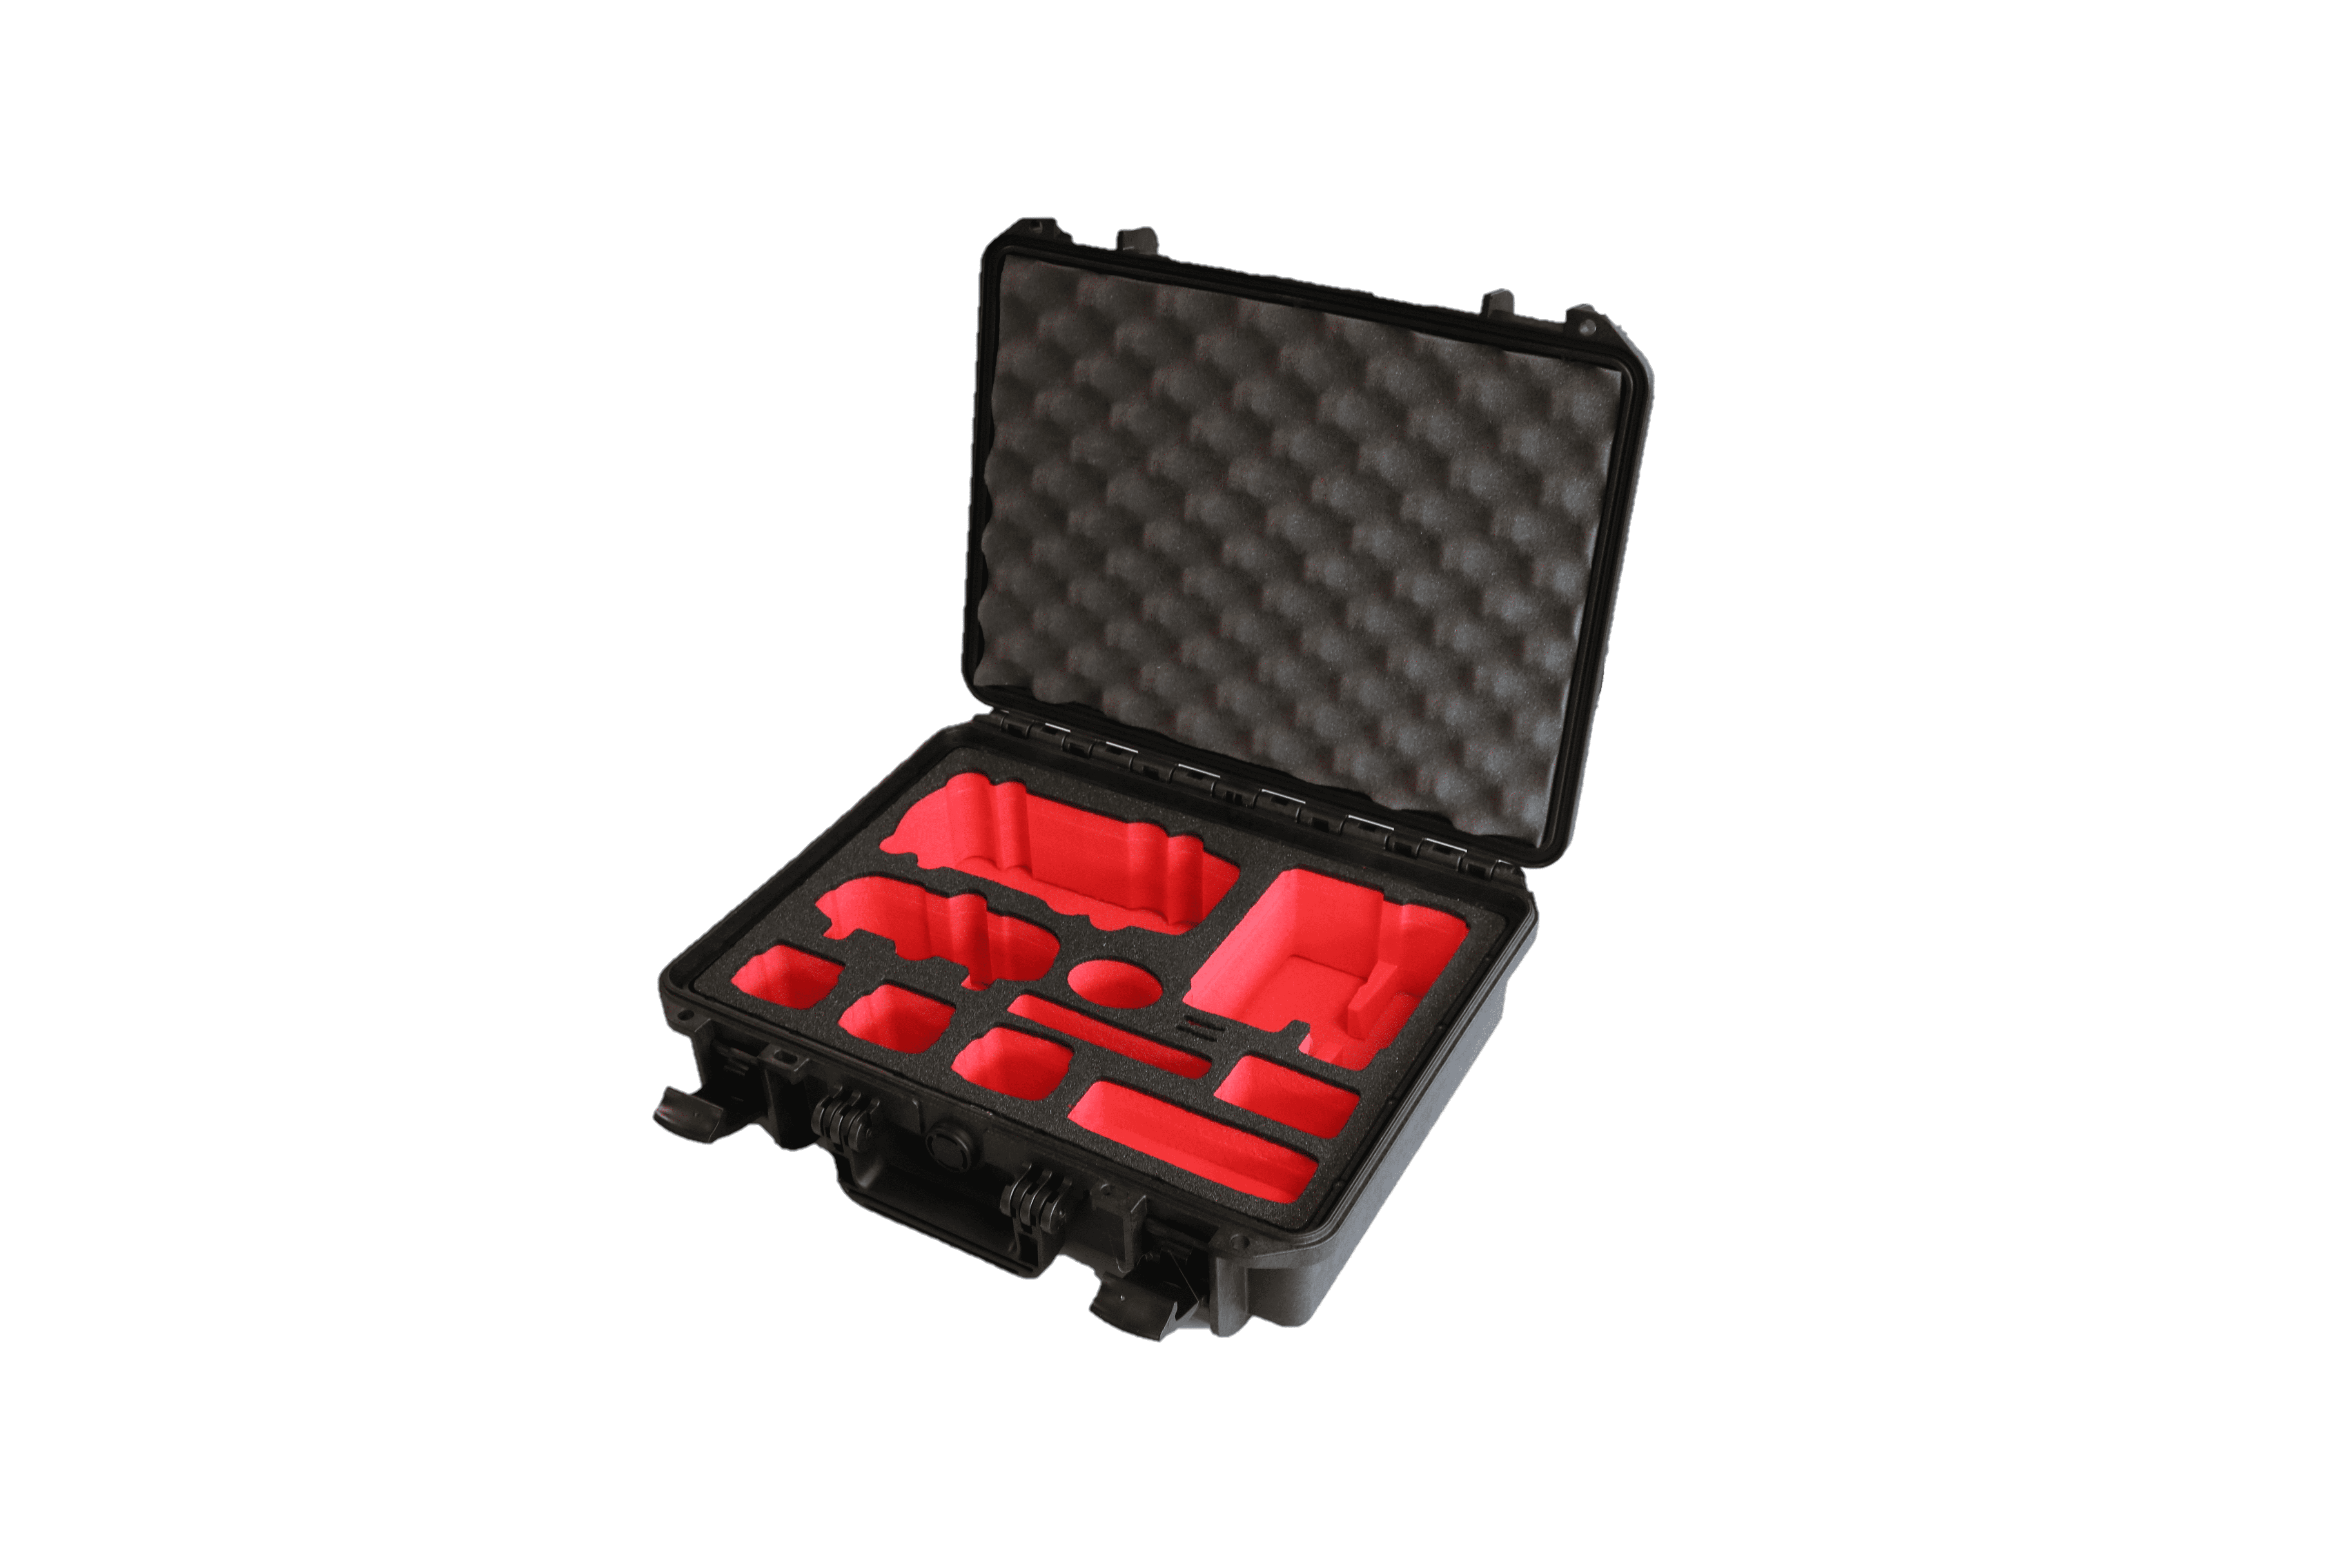 MAX380H115 MAVIC 2 PRO/ZOOM IP67 Rated Drone Case